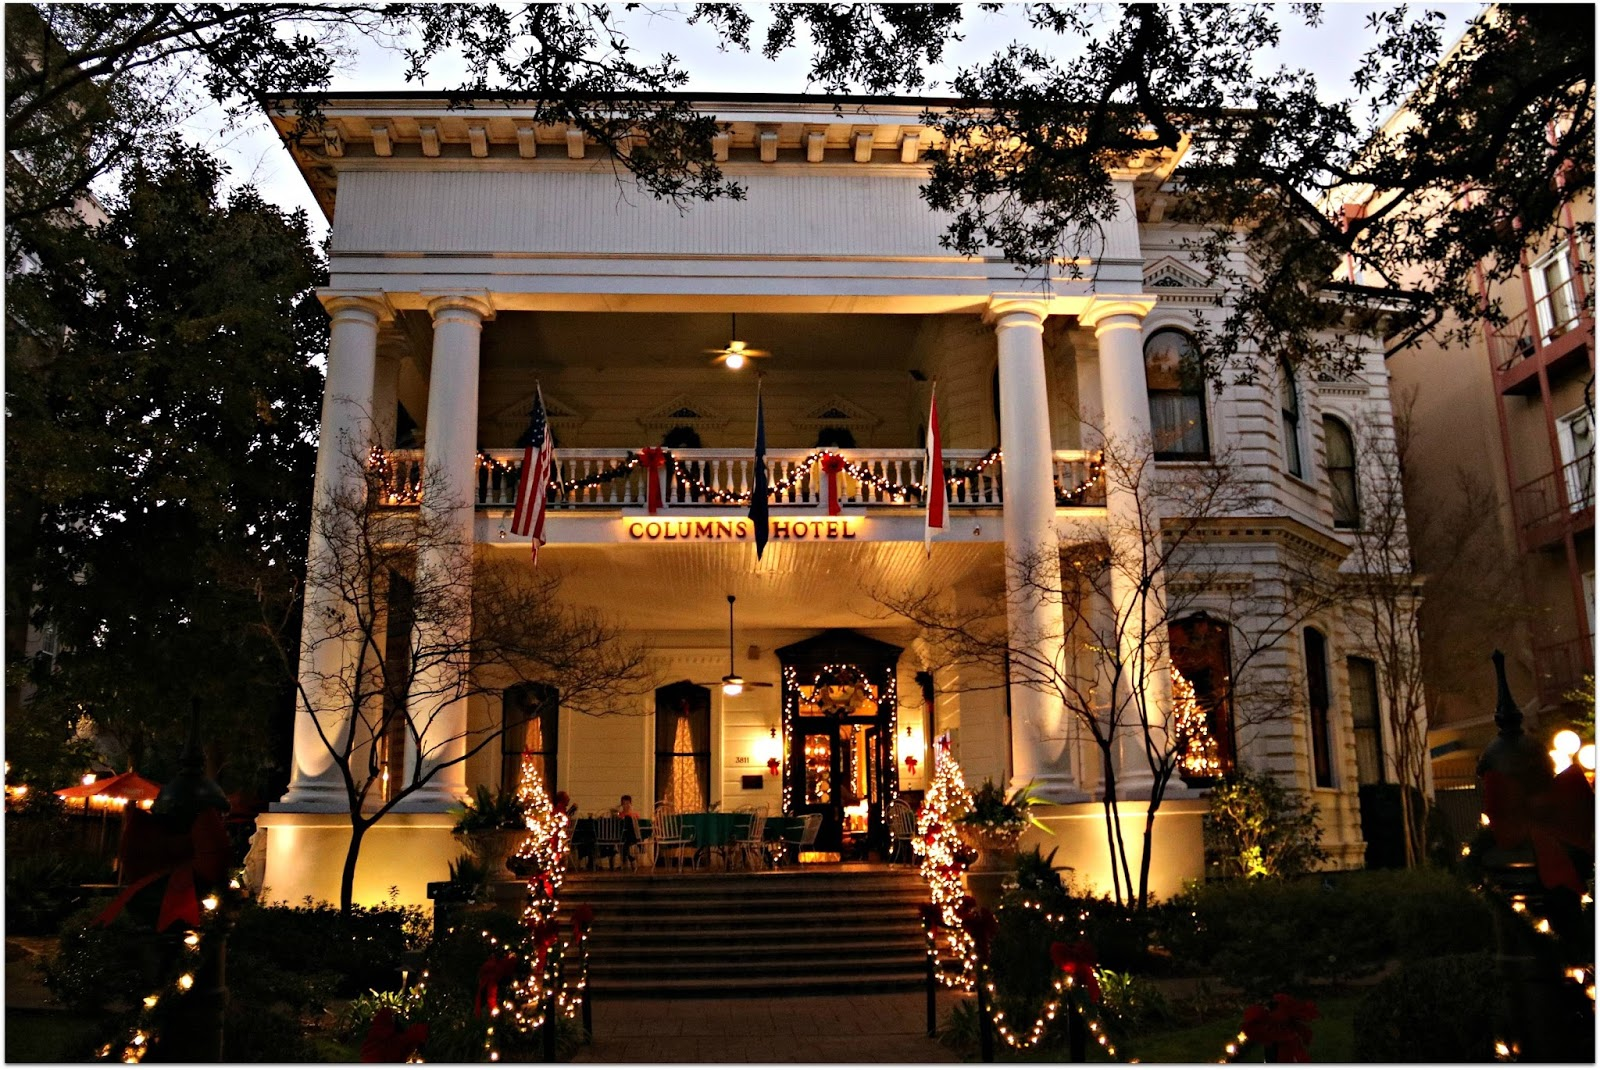 Image result for The Columns Hotel new orleans